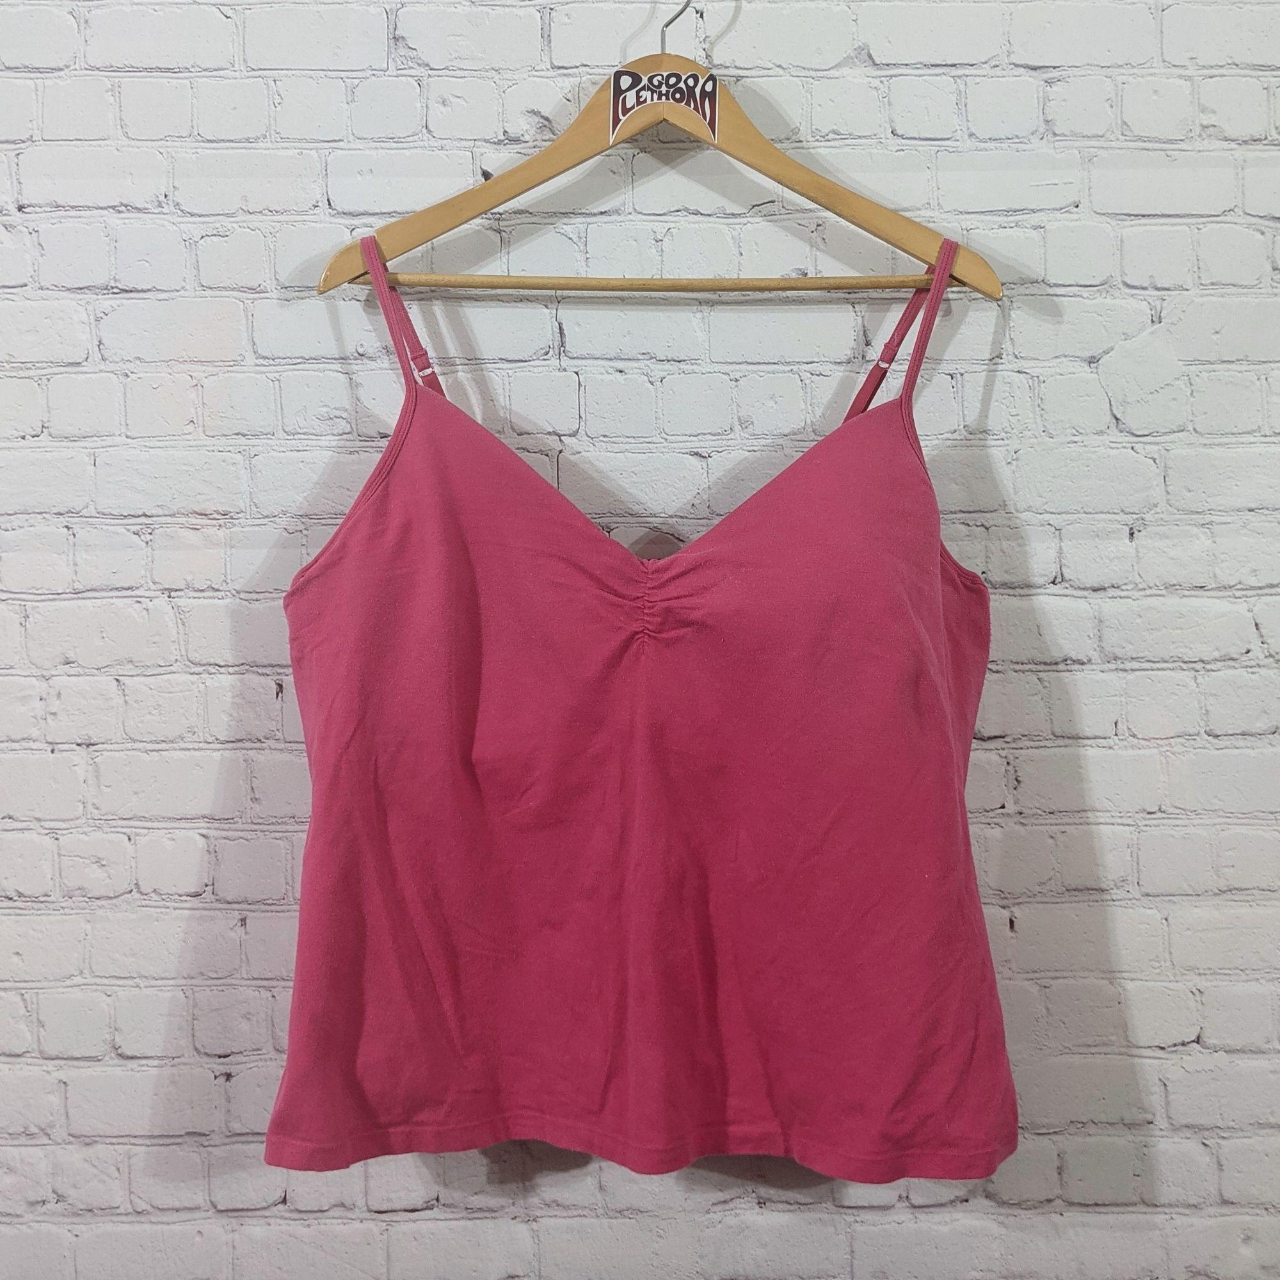 Product Image 1 - Avenue Body Built-In Bra Top